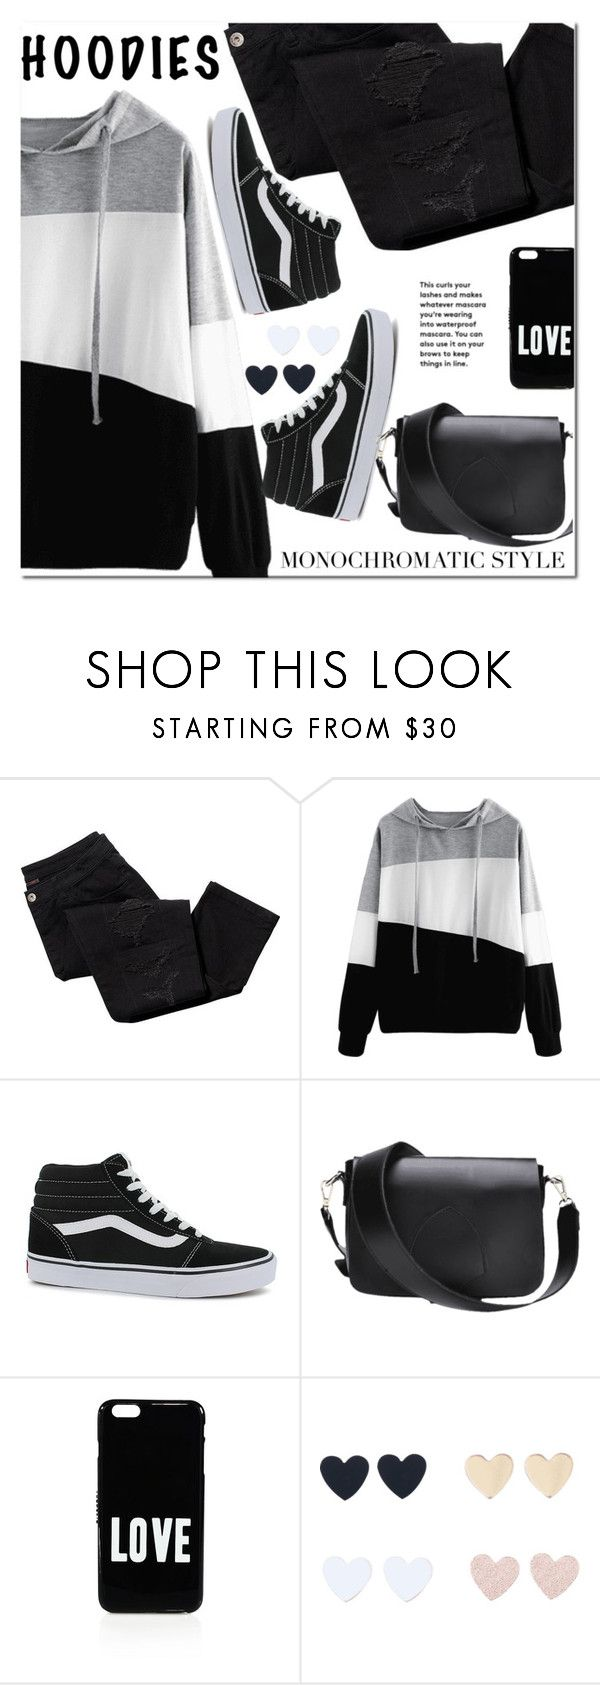 """""""In My Hood: Cozy Hoodies"""" by ansev ❤ liked on Polyvore featuring Avon, Vans, Givenchy, black, bag, Hoodies and Monochromaticstyle"""